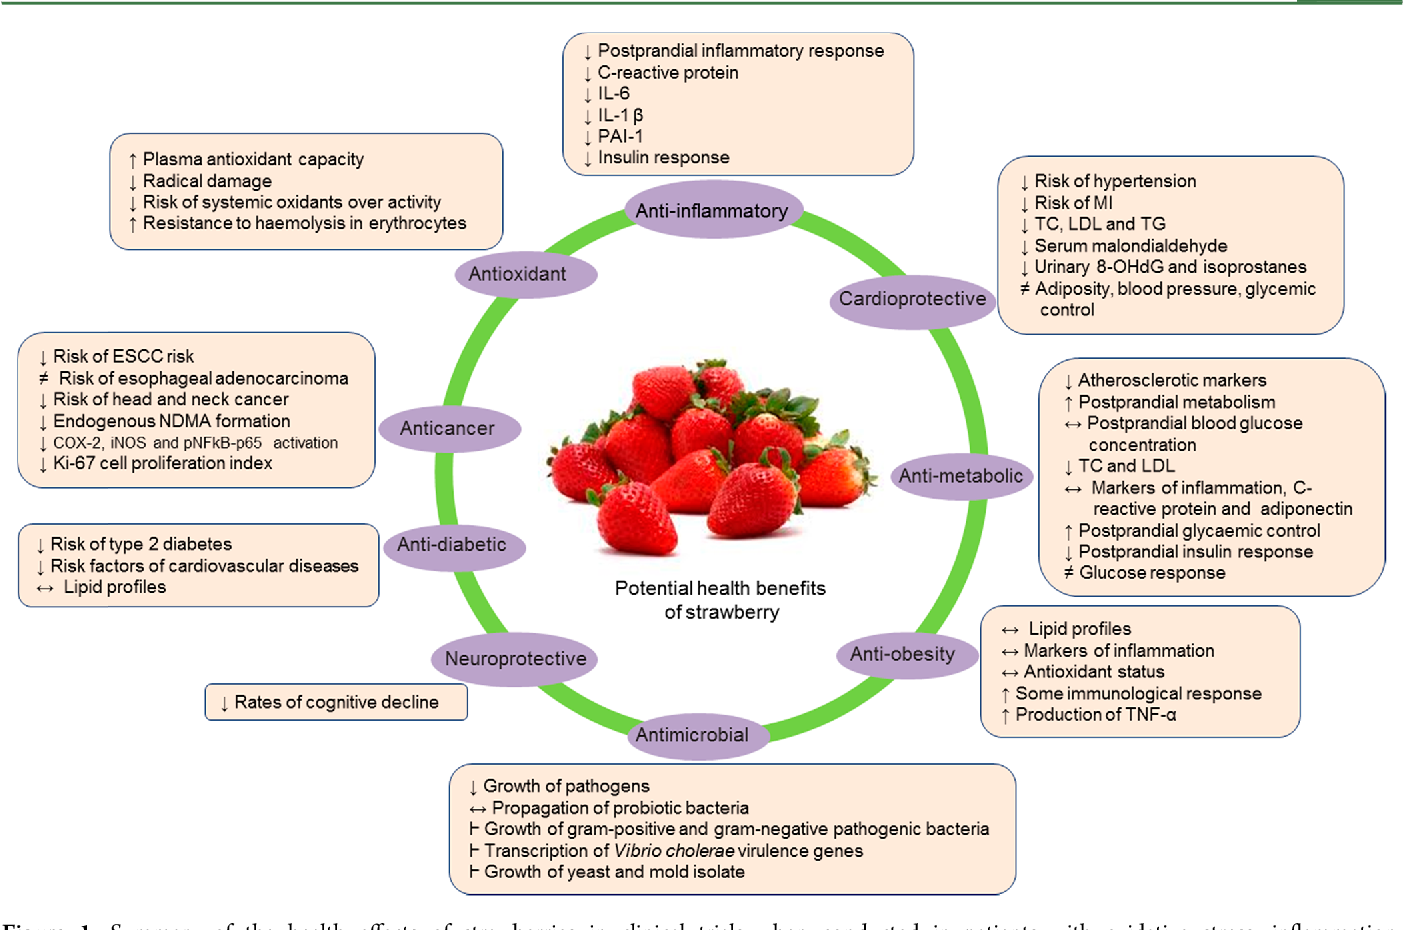 Figure 1. Summary of the health effects of strawberries in clinical trials when conducted in patients with oxidative stress, inflammation, cardiovascular disease, metabolic syndrome, diabetes, obesity, cancer, microbial infection, or neurological disorders. The symbol (↔) denotes normalizes the effect, (↓) reduces activity, (↑) increases activity, (perpendicular) suppresses activity, and (≠) no effect.